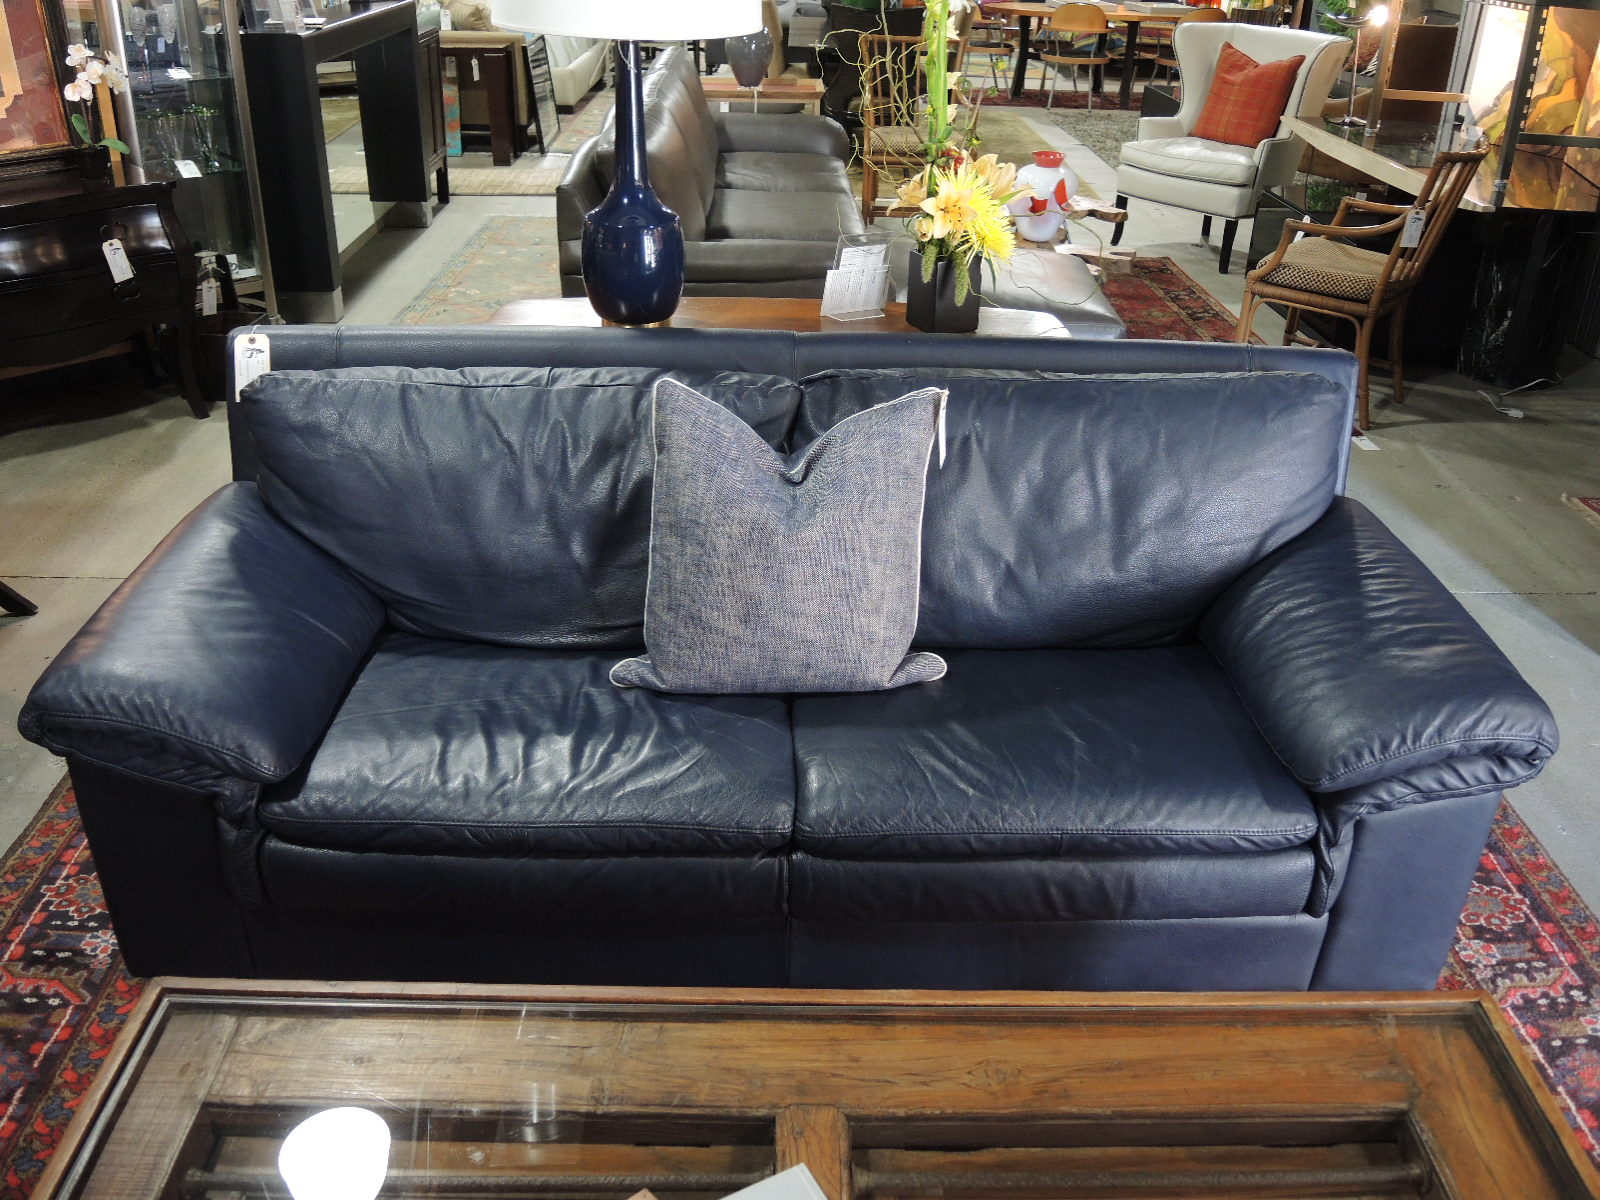 Custom Made In Chic Navy Leather At Hip Furniture, This Sofa Combines Smart  Luxury With Comfort. Measuring 81u2033W X 33u2033D X 33u2033H, We Have It Priced At ...